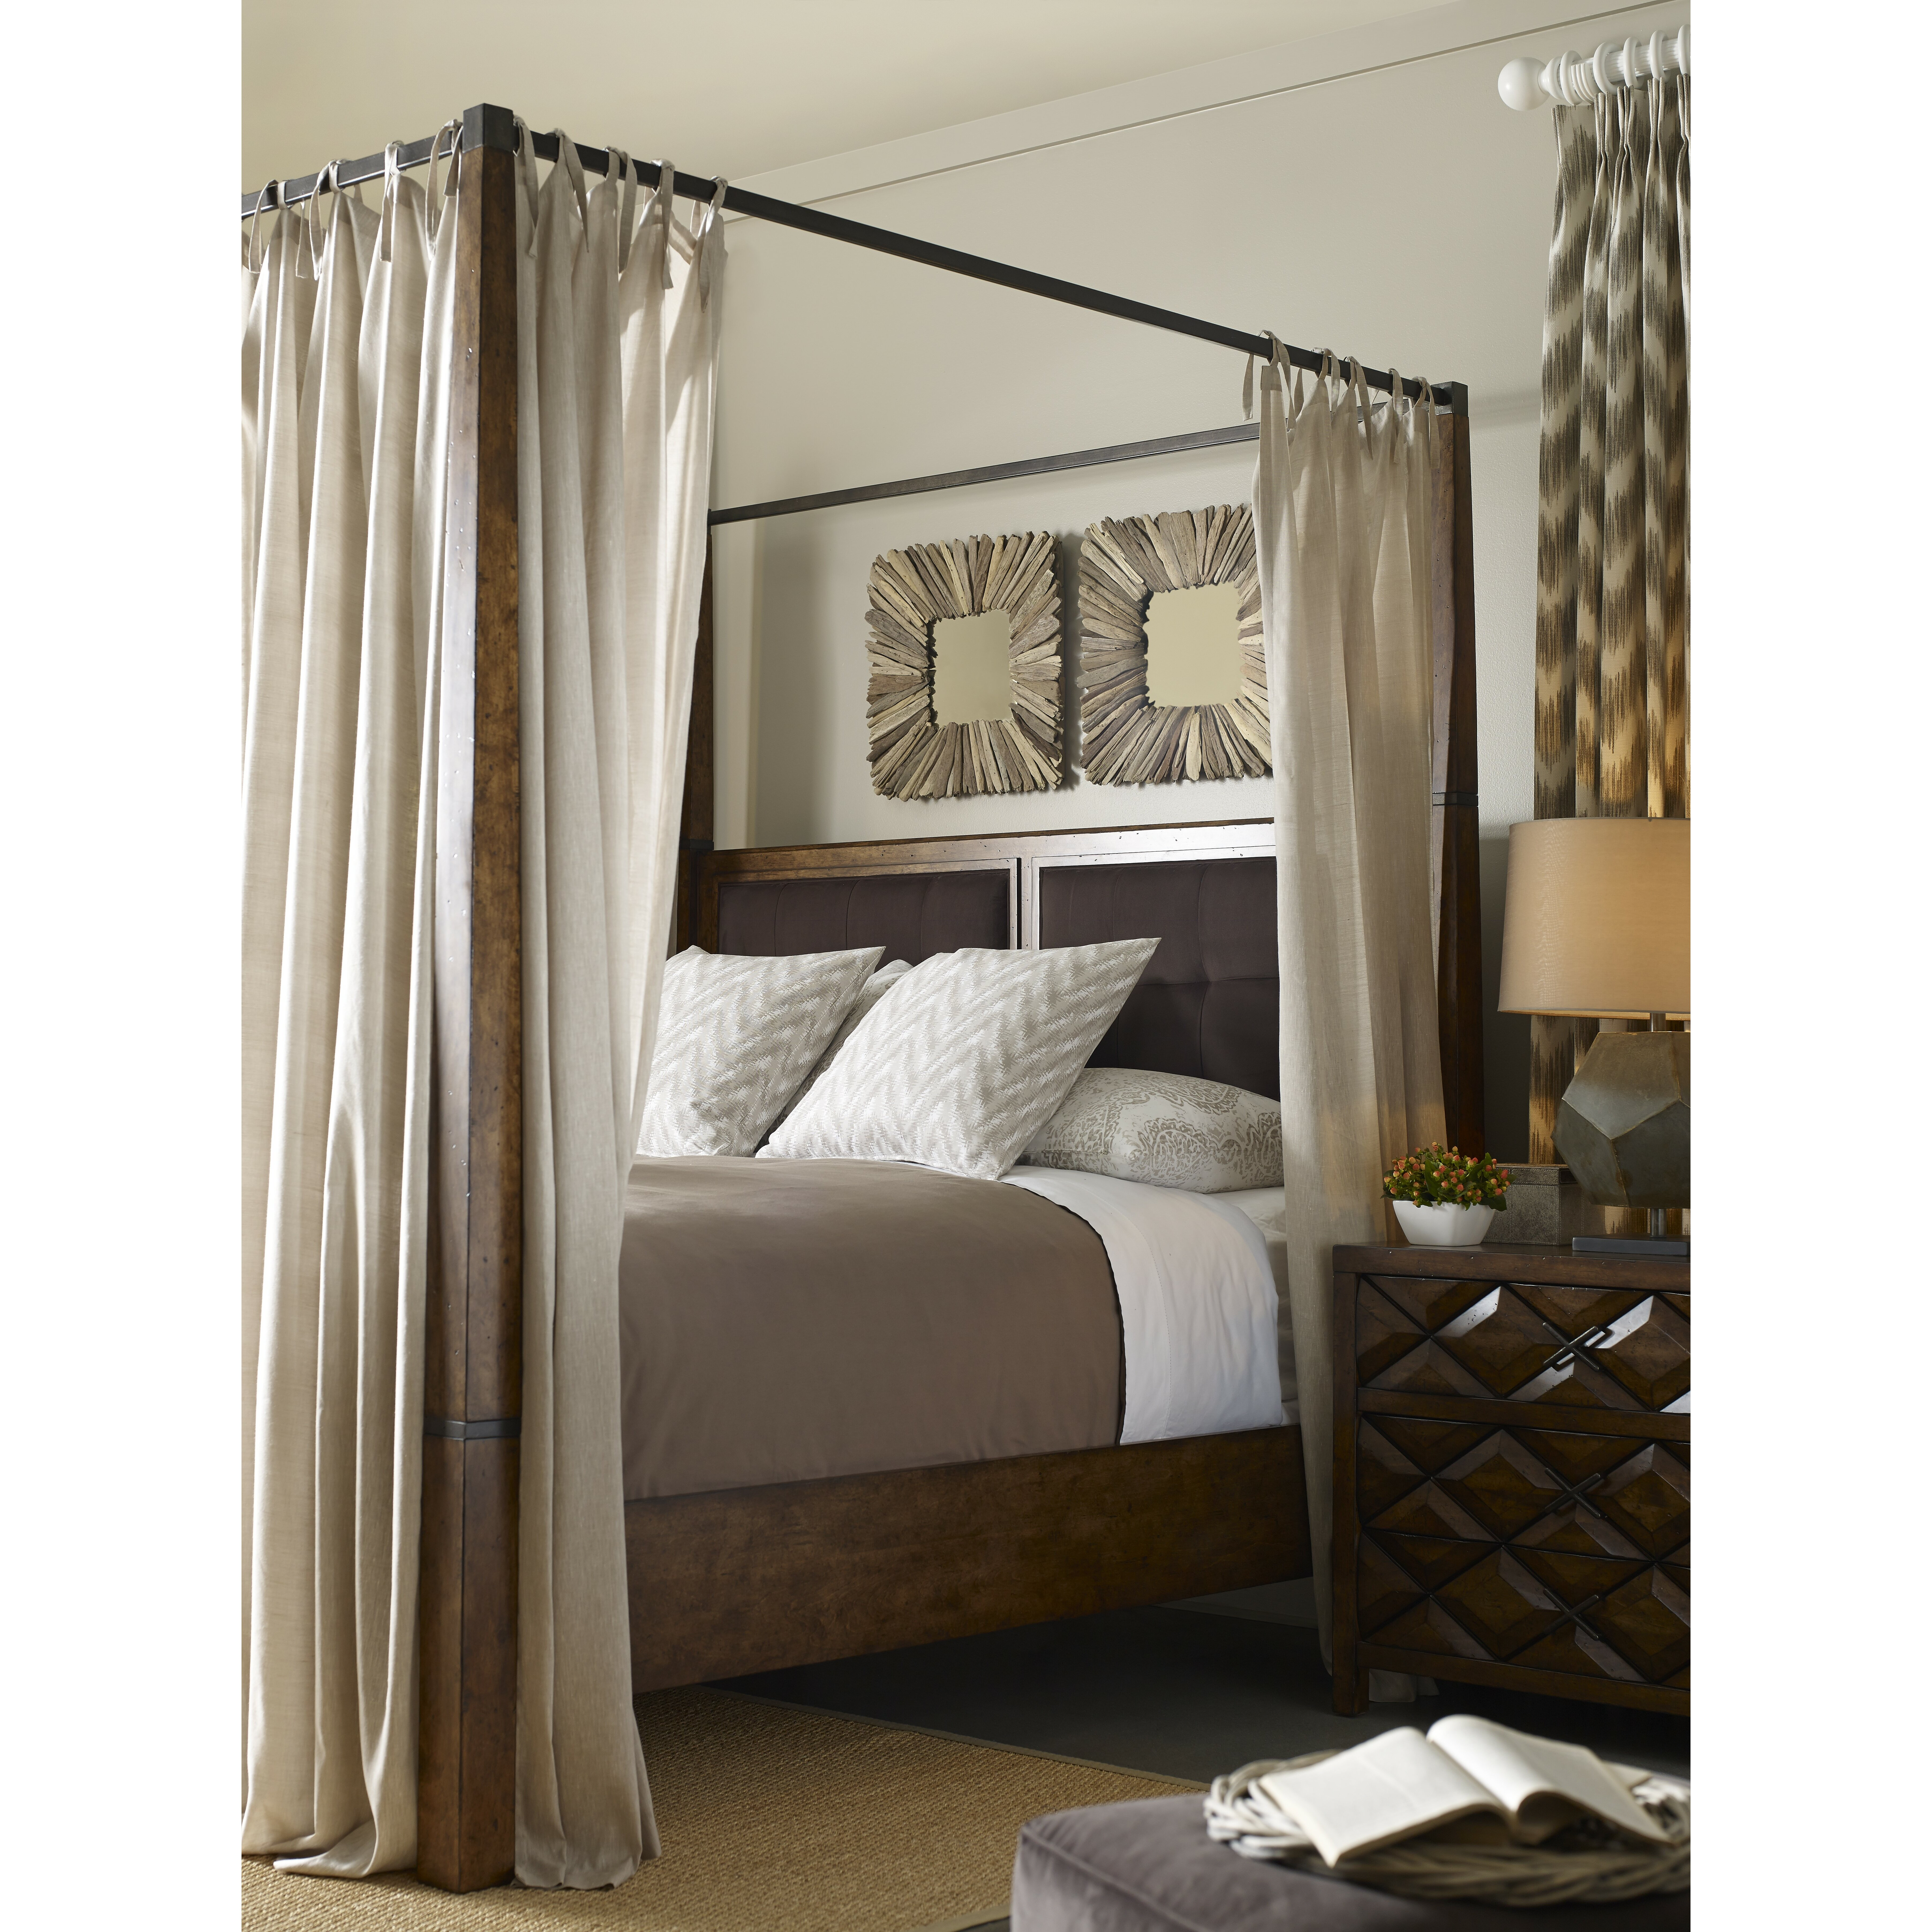 Segula Upholstered Canopy Bed Canopy Beds You ll Love Wayfair  Dhp Poster  California King Beds. California King Poster Dhp Beds   penncoremedia com